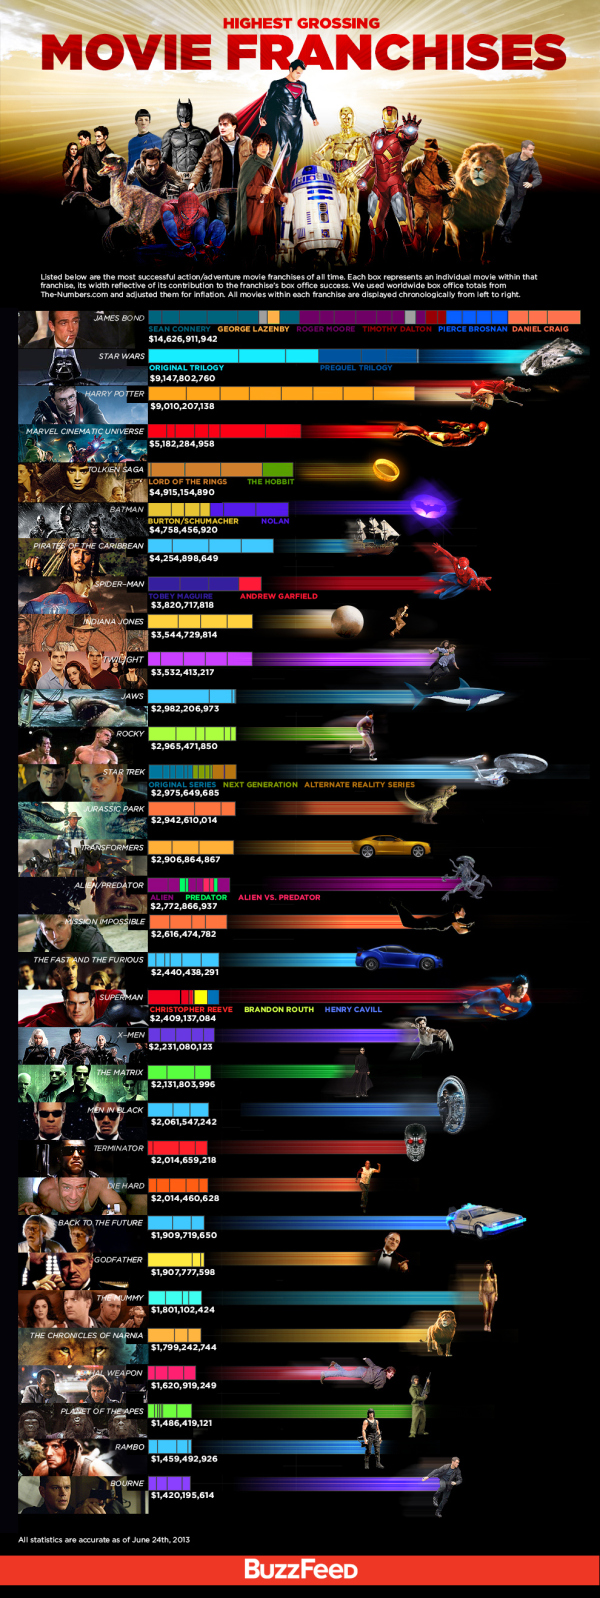 Highest Grossing Movie Franchises infographic